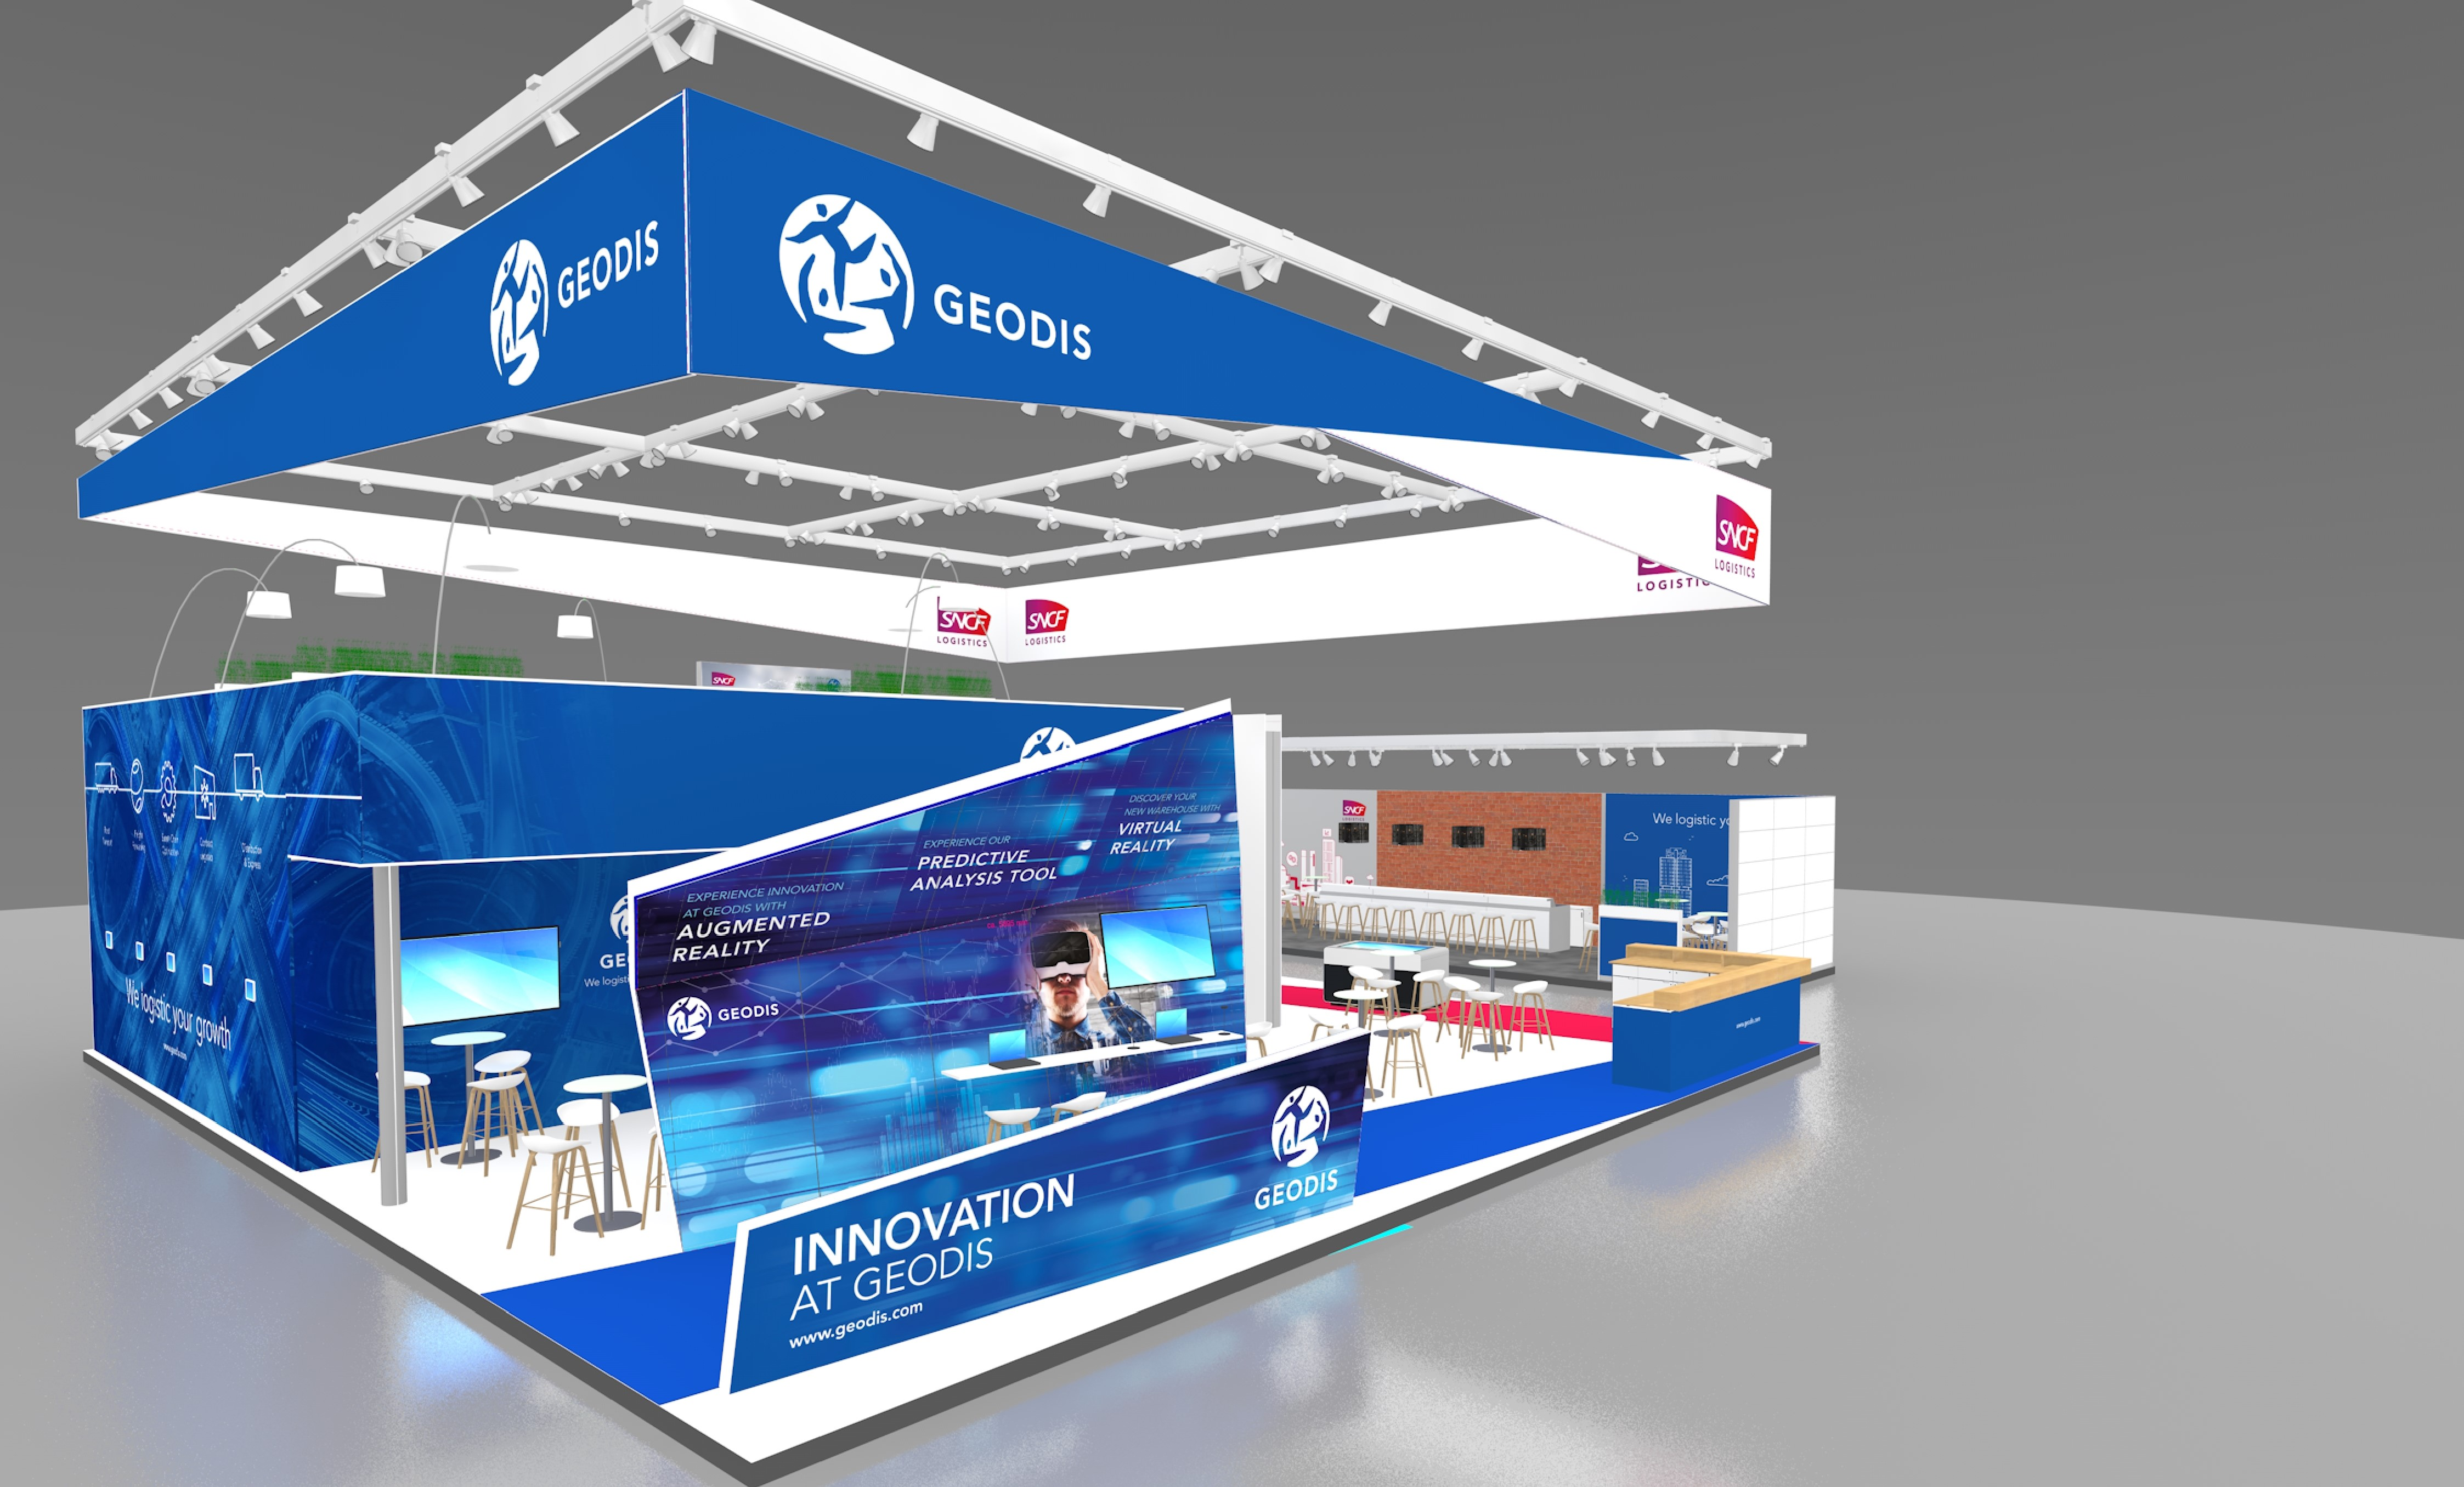 GEODIS EMPHASIZES IMPORTANCE OF INNOVATION IN LOGISTICS AT